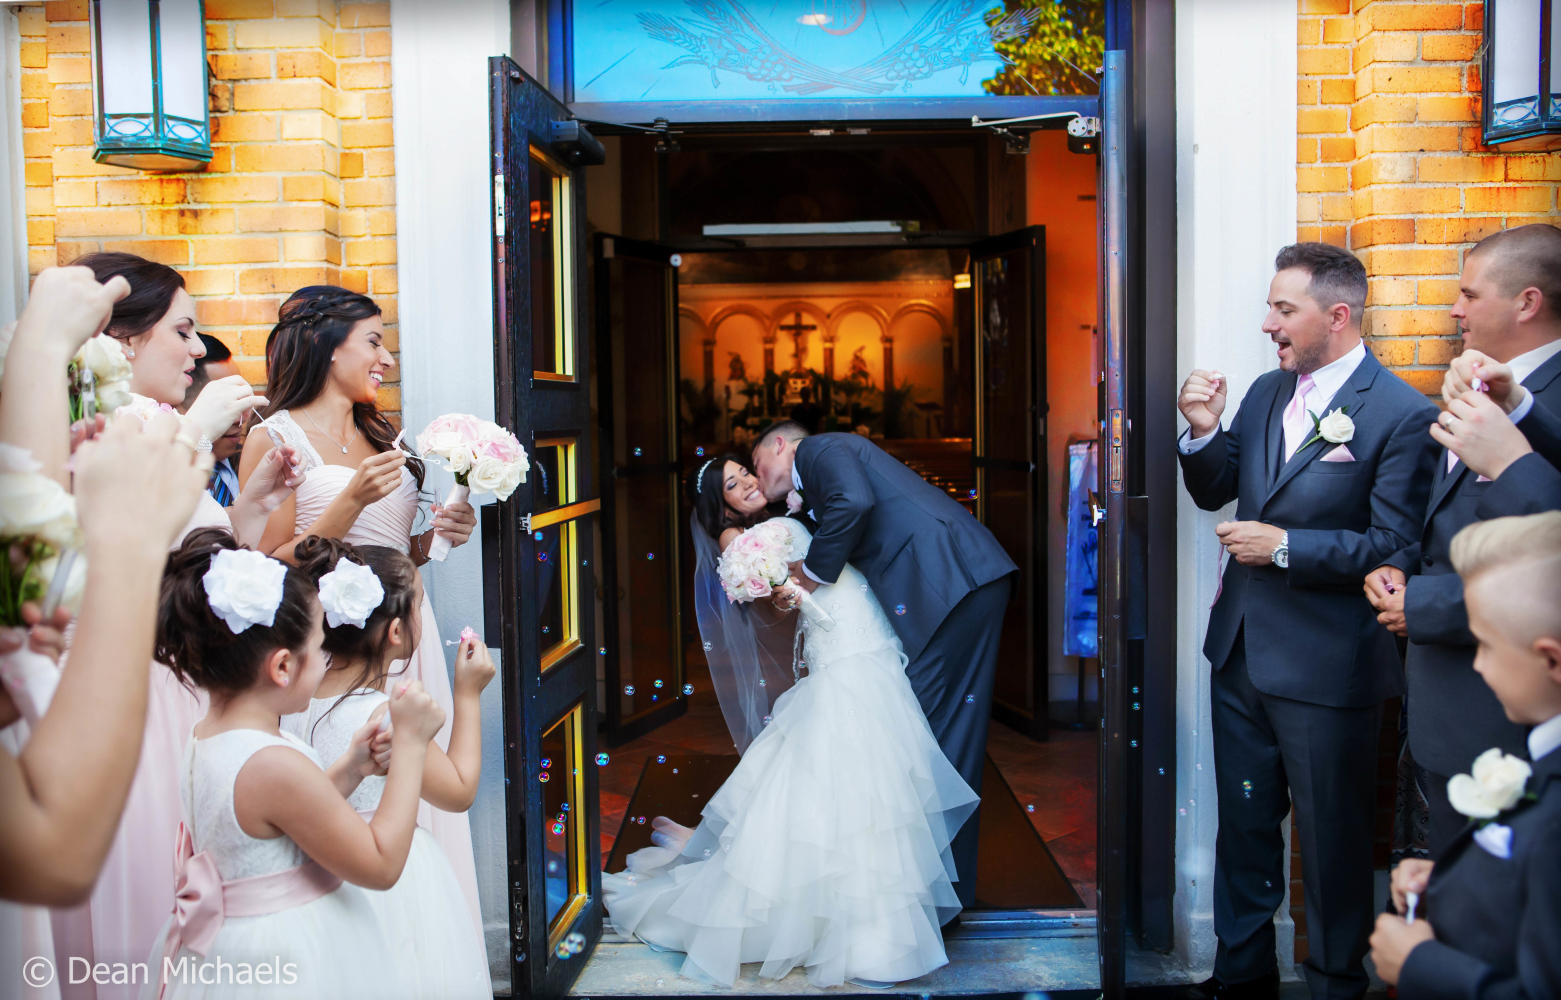 wedding-photographer-gallery-E5H3QG9PR9UE.jpg